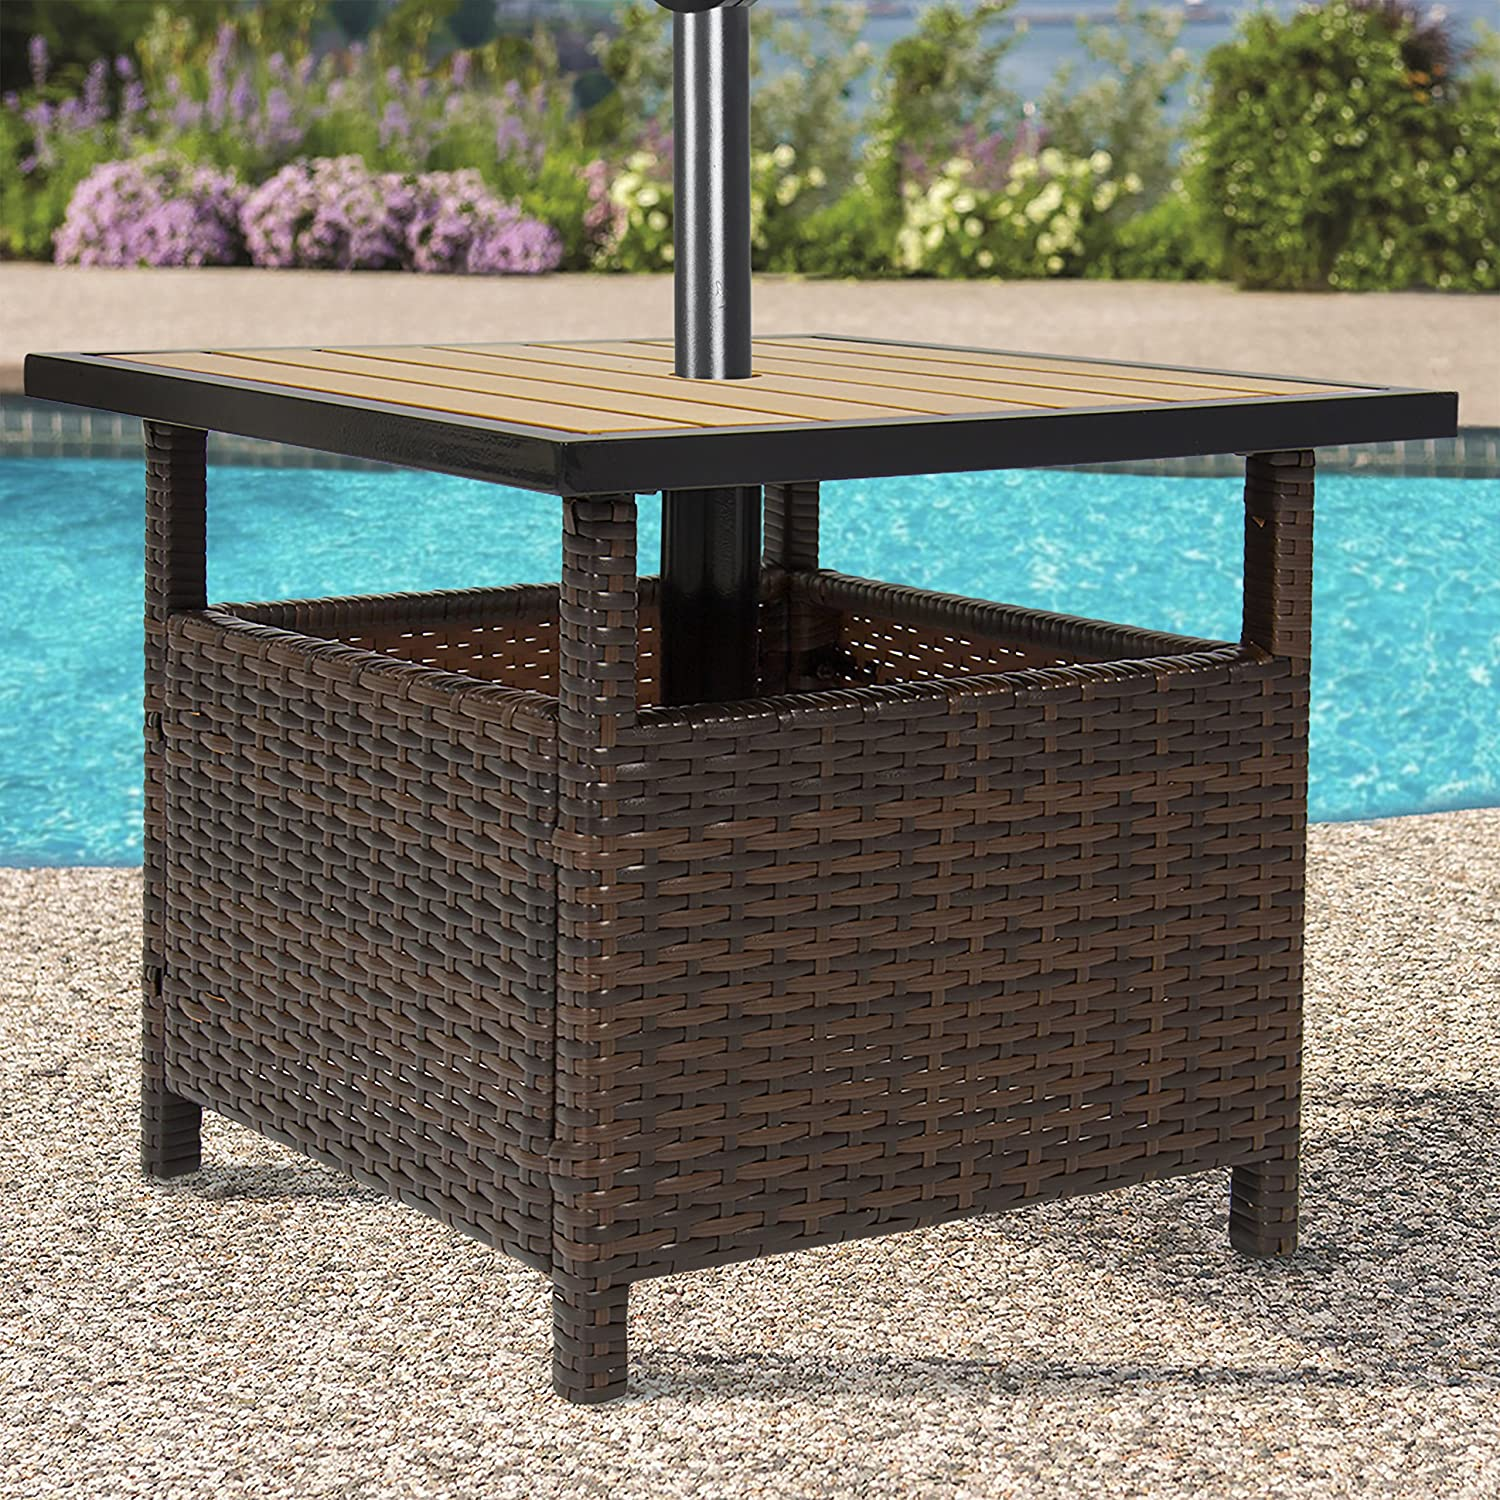 Amazoncom Best Choice Products Patio Umbrella Stand Wicker